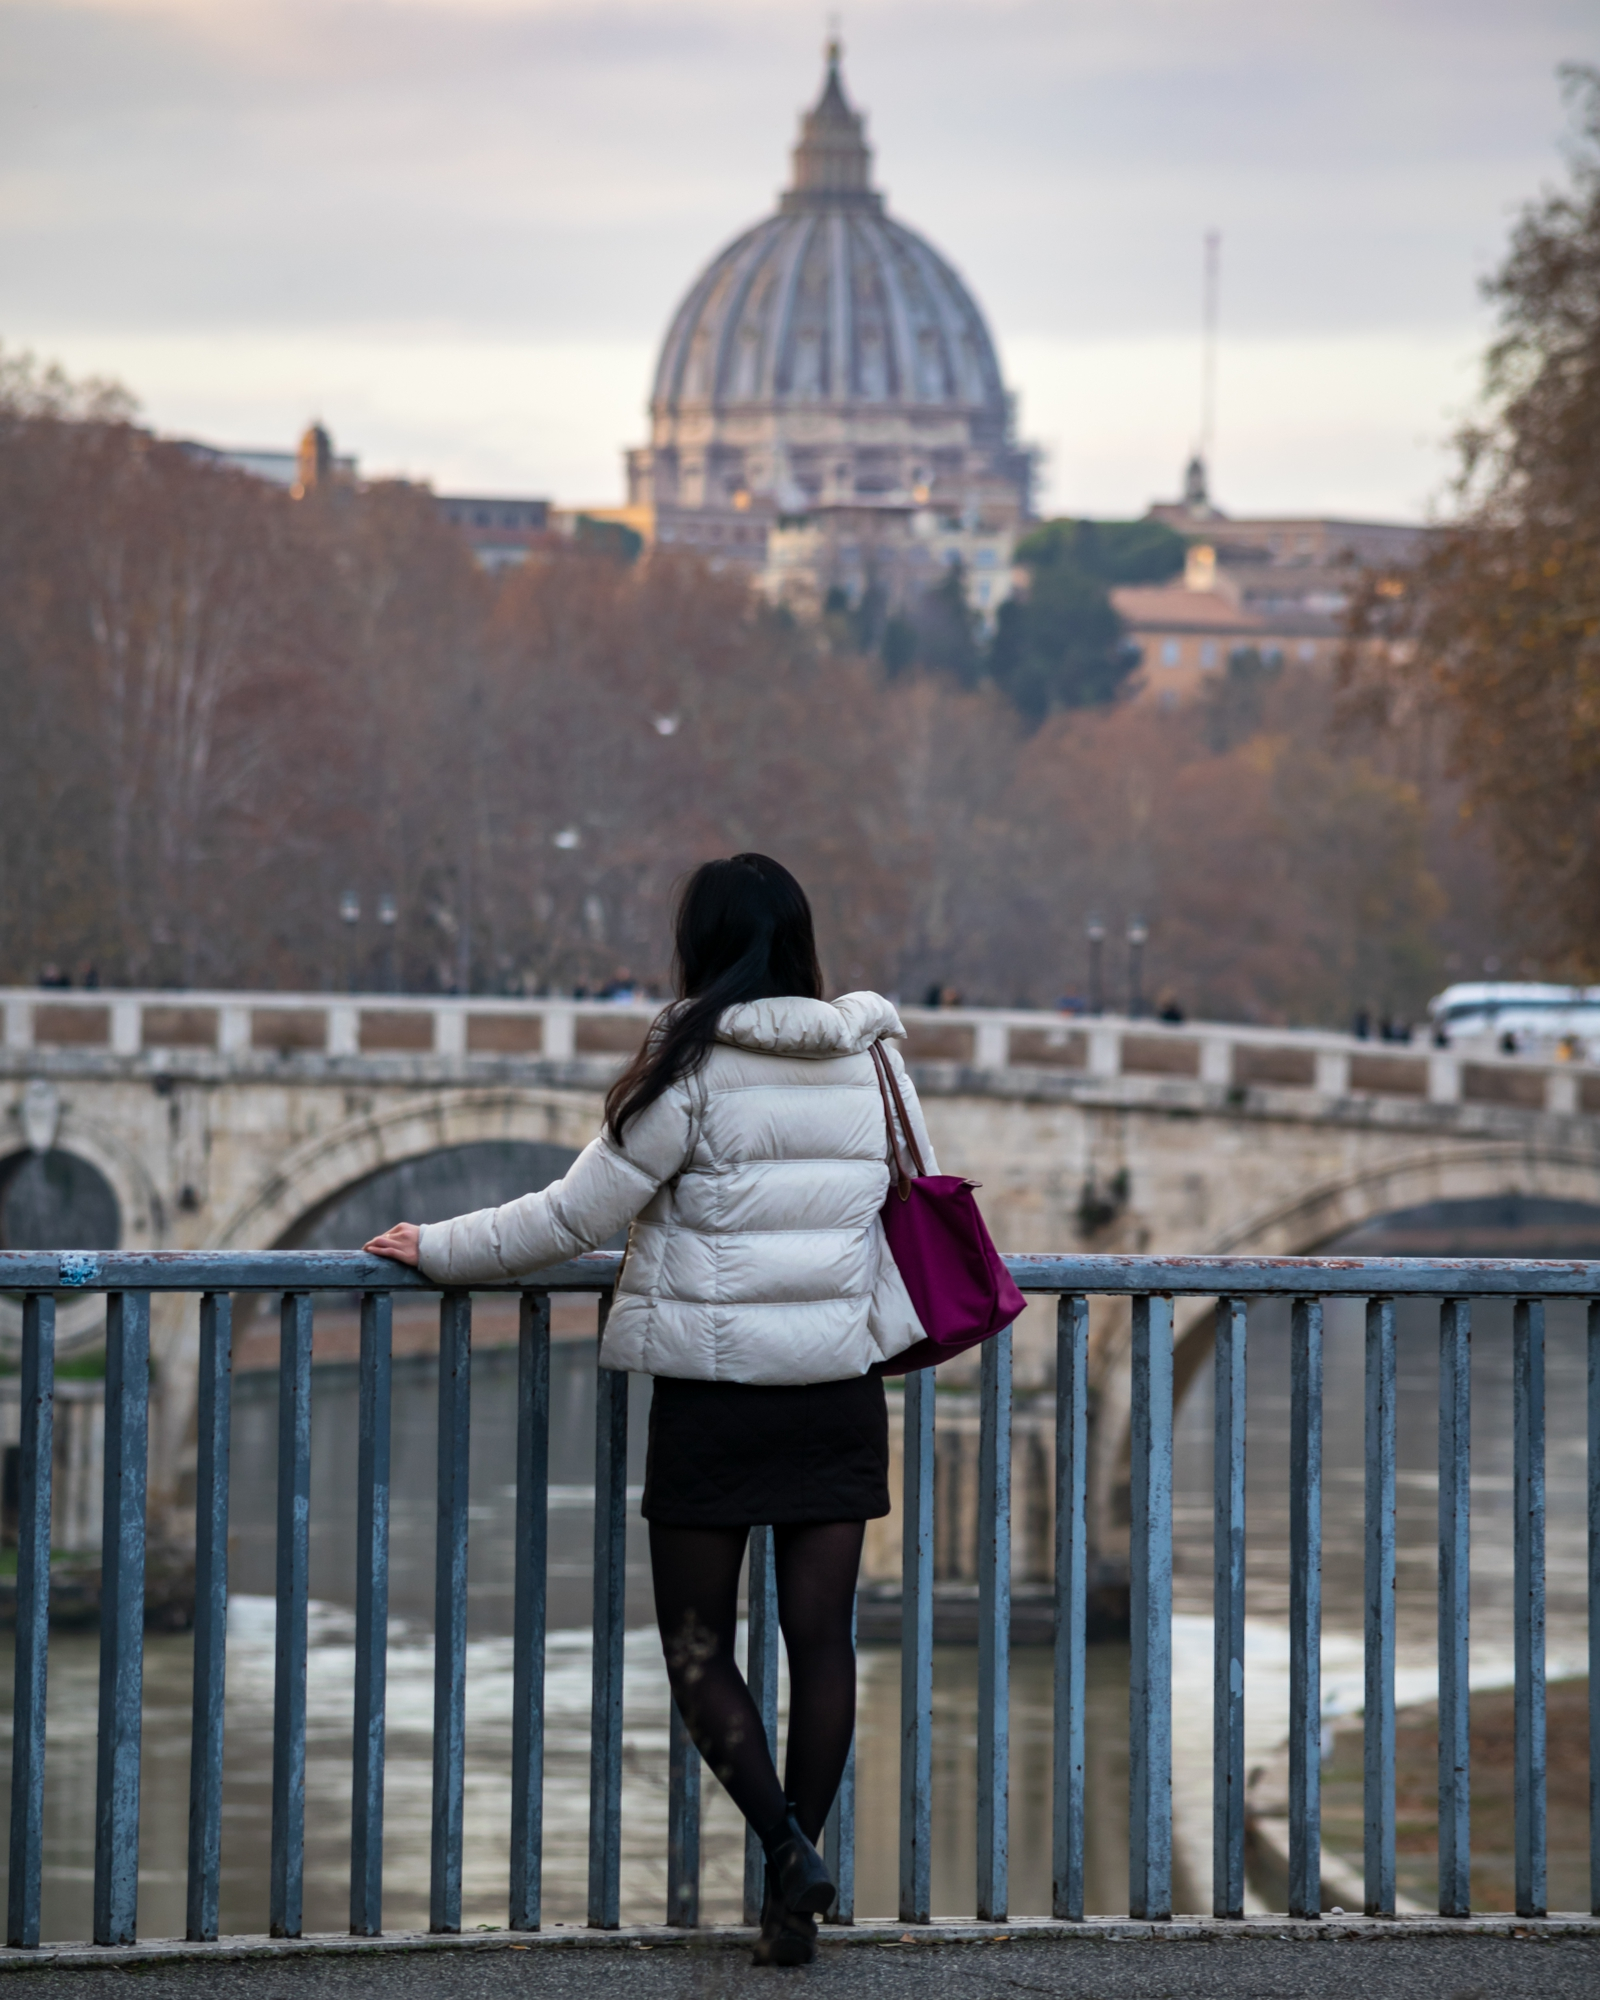 Portrait in Front of Vatican on Bridge at Sunset